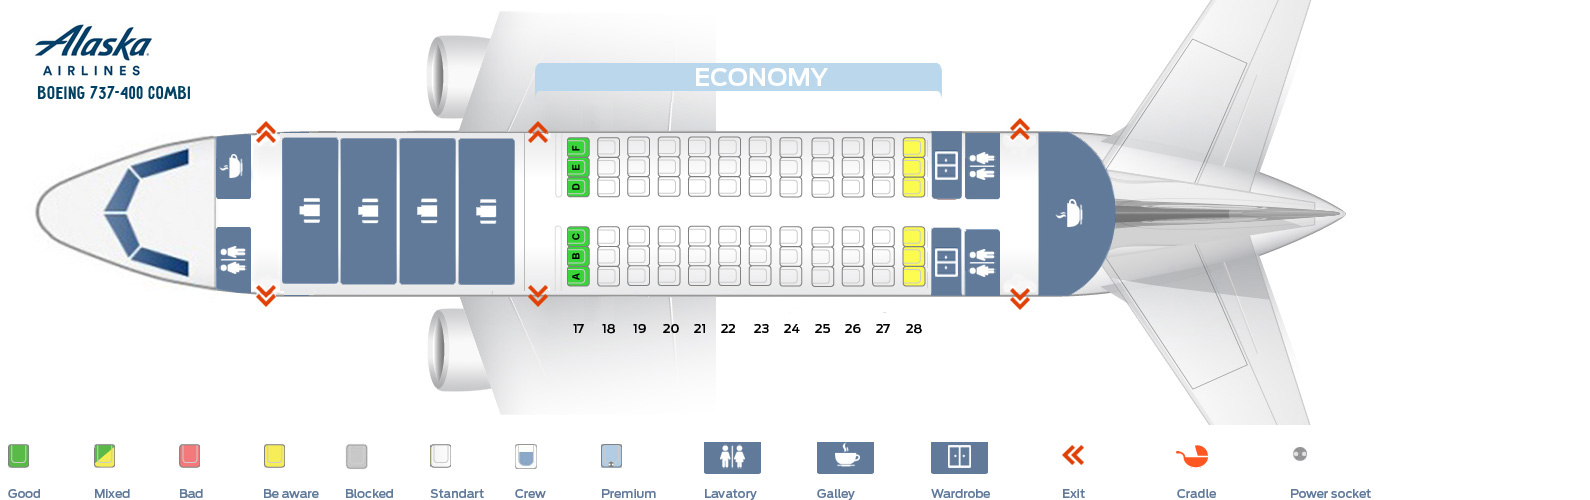 Seat map Boeing 737-400 Alaska Airlines. Version 2 Combi